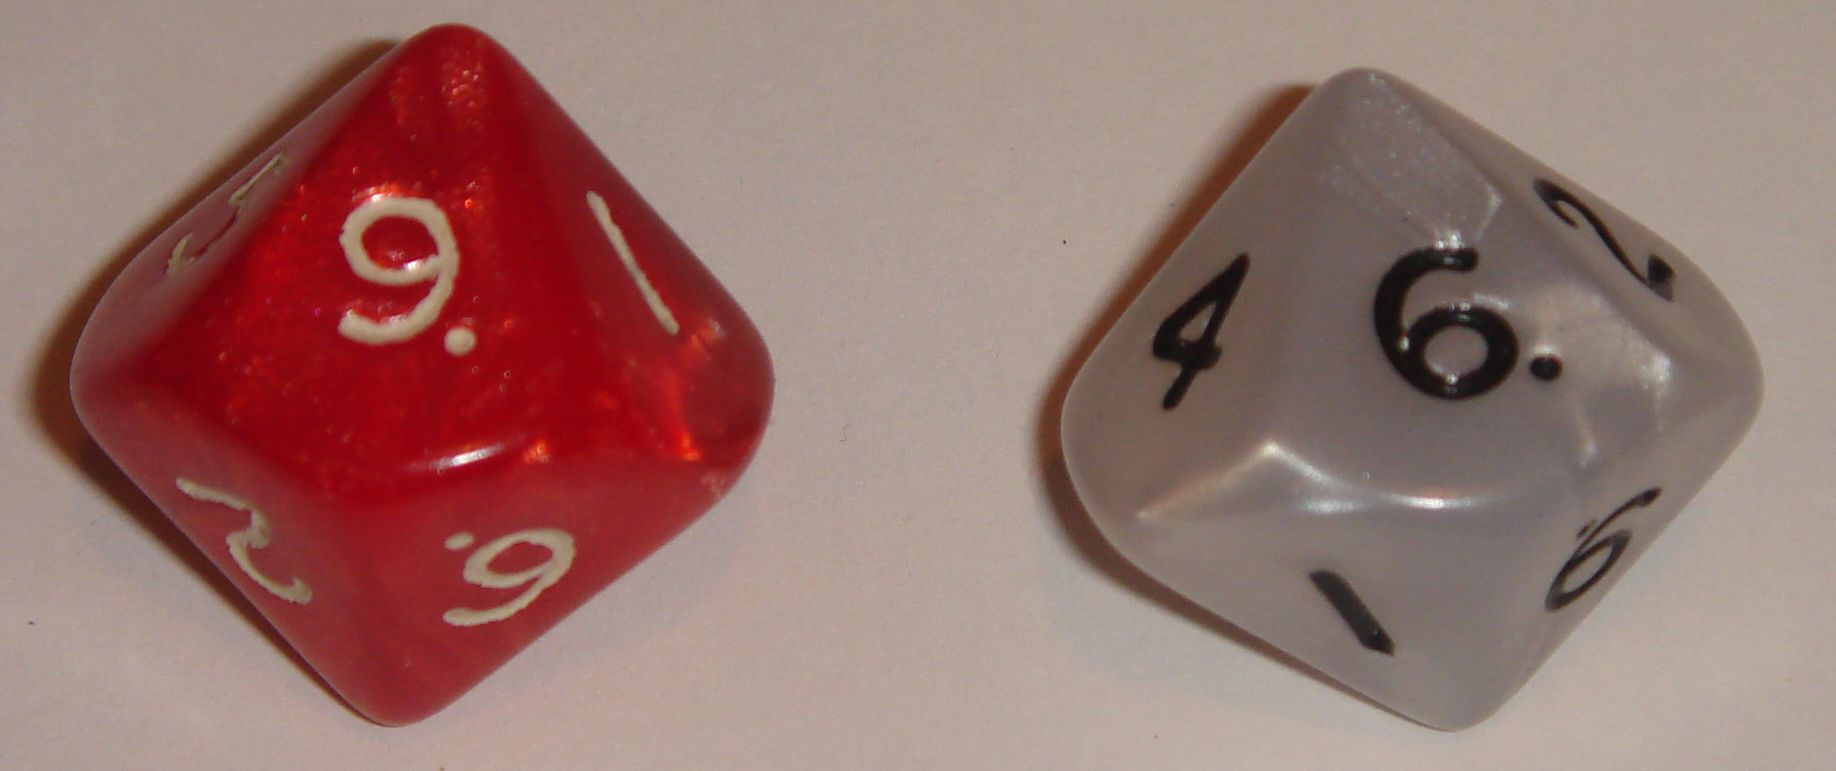 """96"" as represented on two d10's.  d10's exist because people want to generate numbers between 1 and 10,"